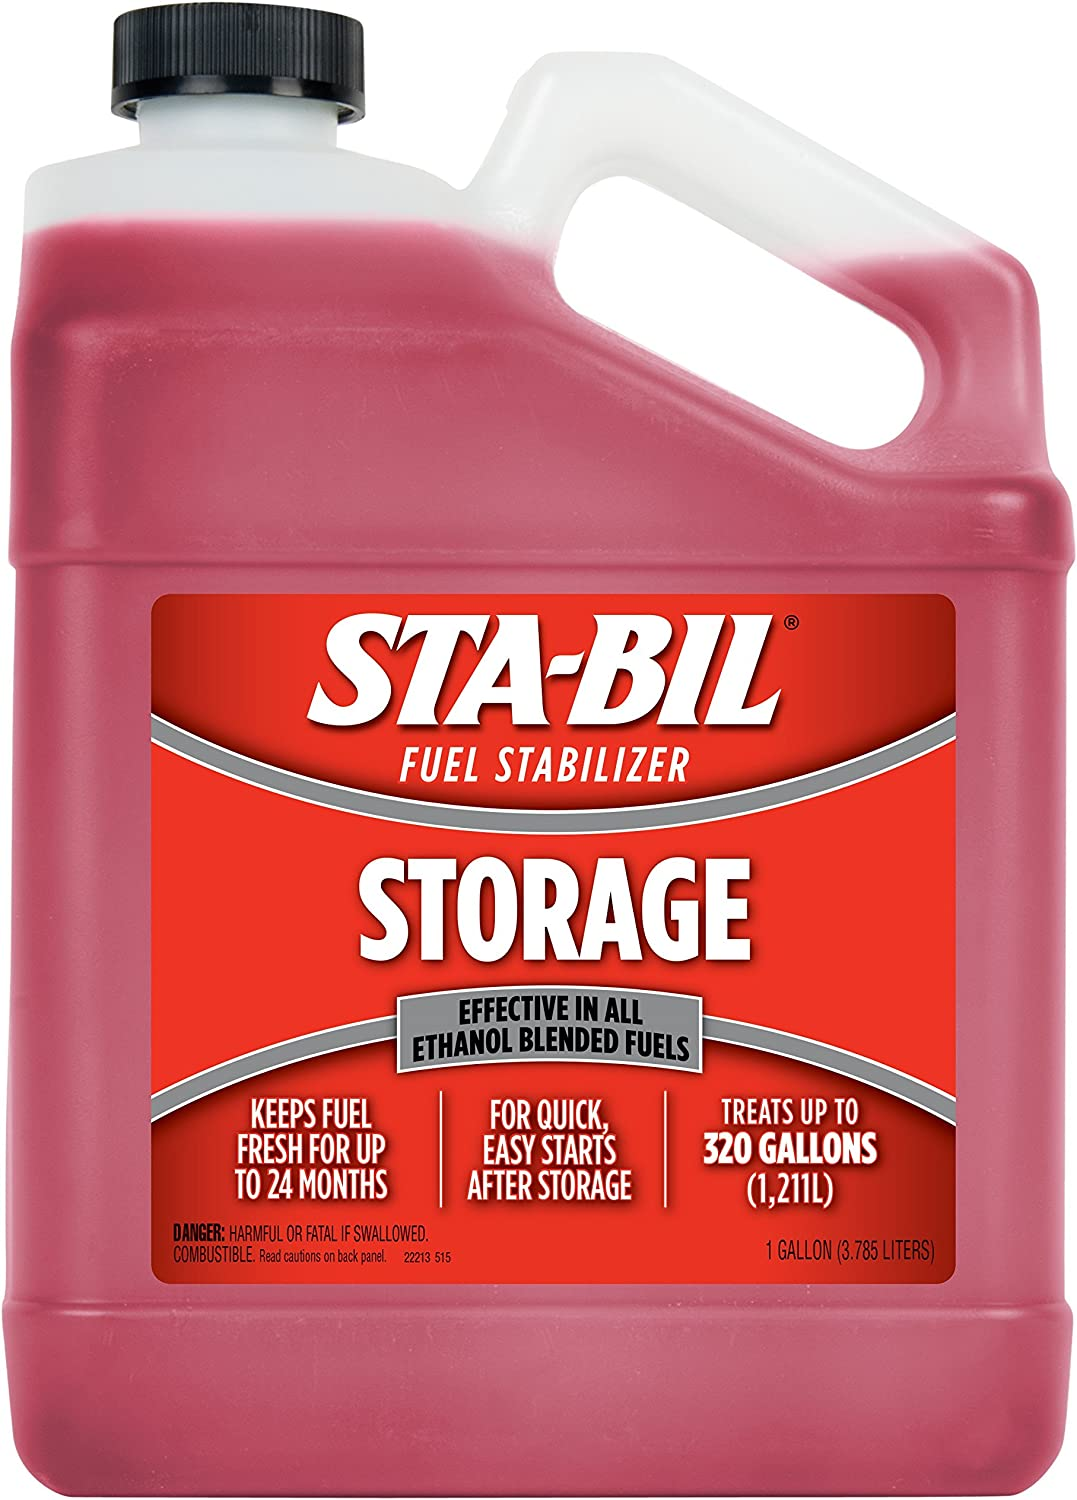 STA-BIL 22213 Fuel Stabilizer, 1 Gallon